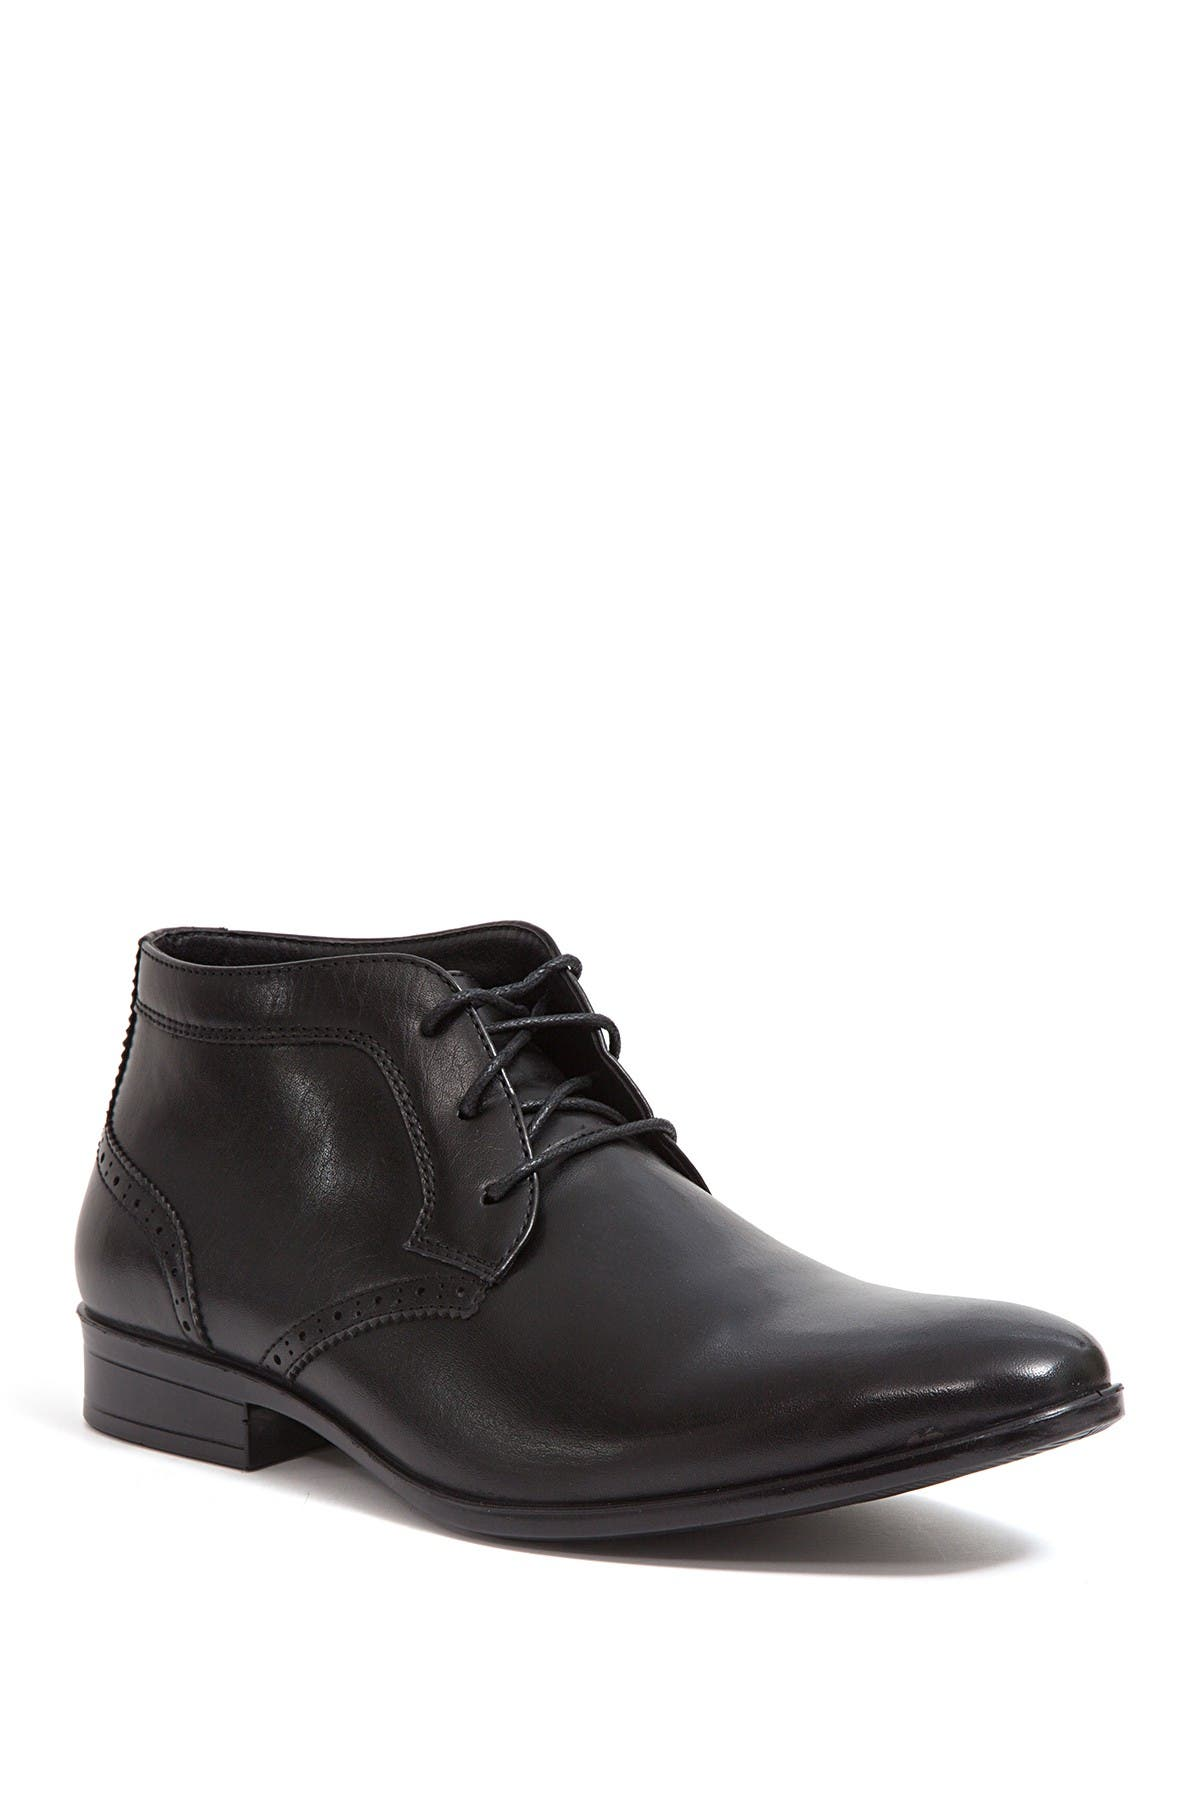 Deer Stags Hooper Faux Leather Ankle Boot